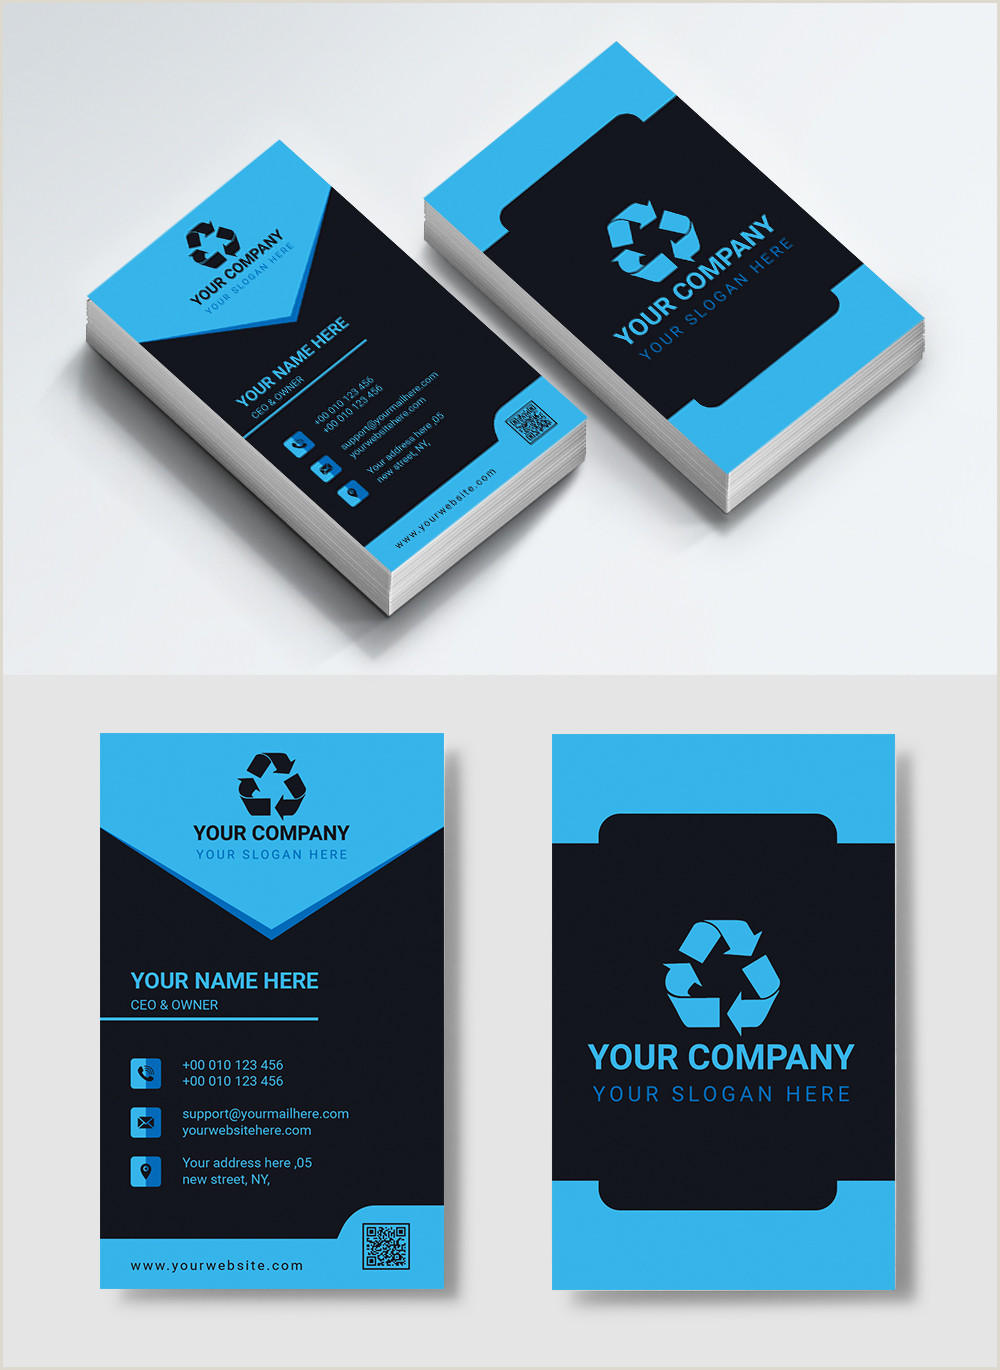 Modern Vertical Business Cards Modern Vertical Business Card Design Template Image Picture